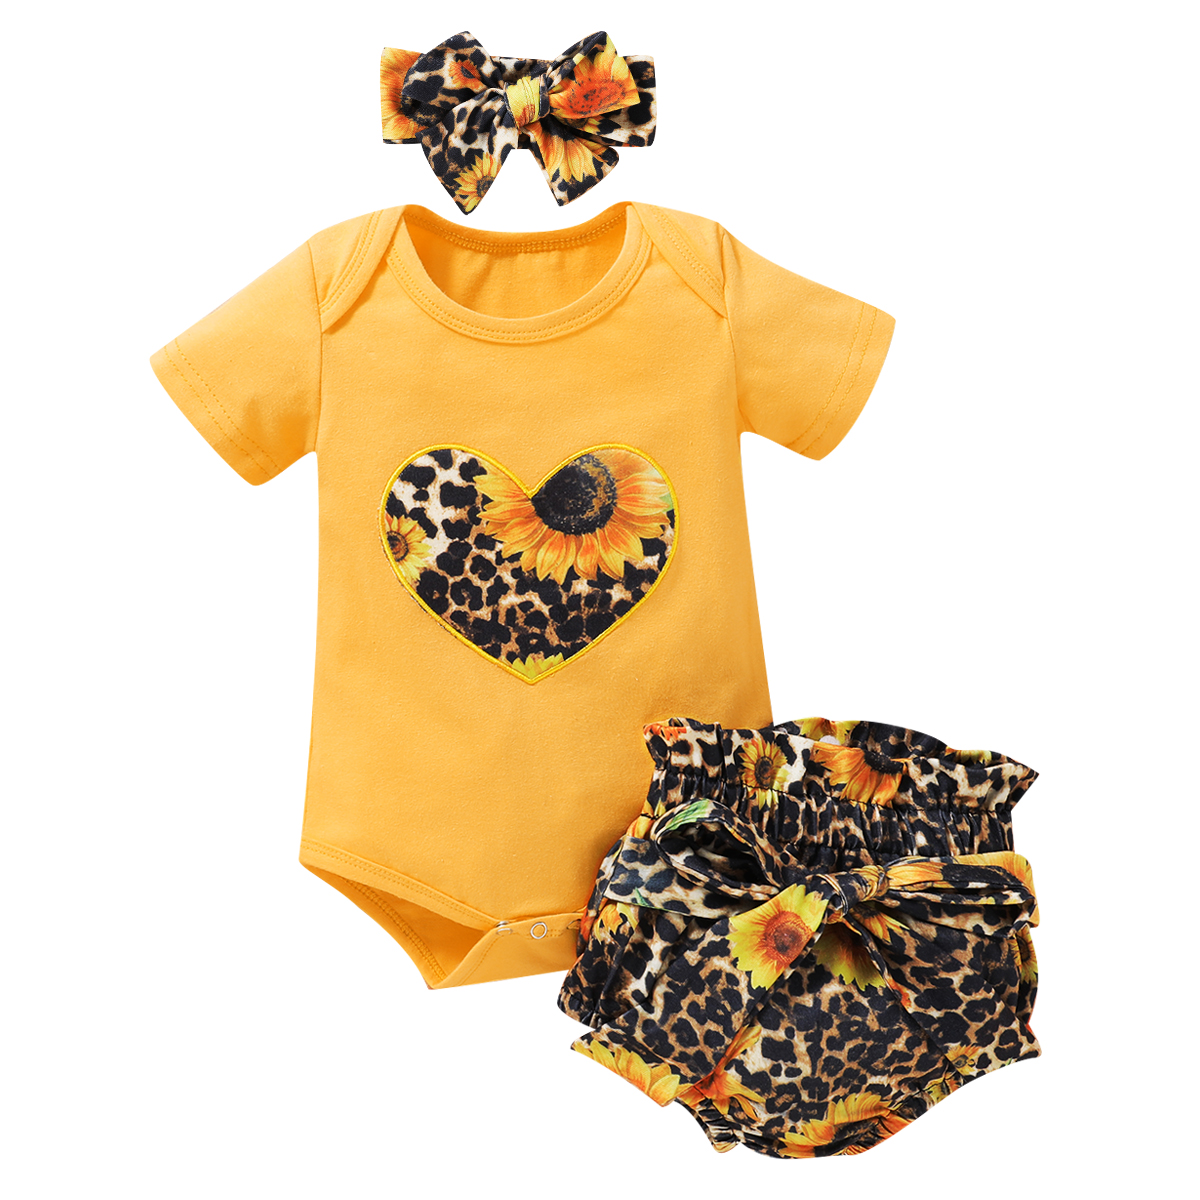 Pudcoco US Stock 0-18M Newborn Infant Baby Girls Clothes Sets Sunflowers Print Short Sleeve Romper Shorts Headband Girl 3PCs Set